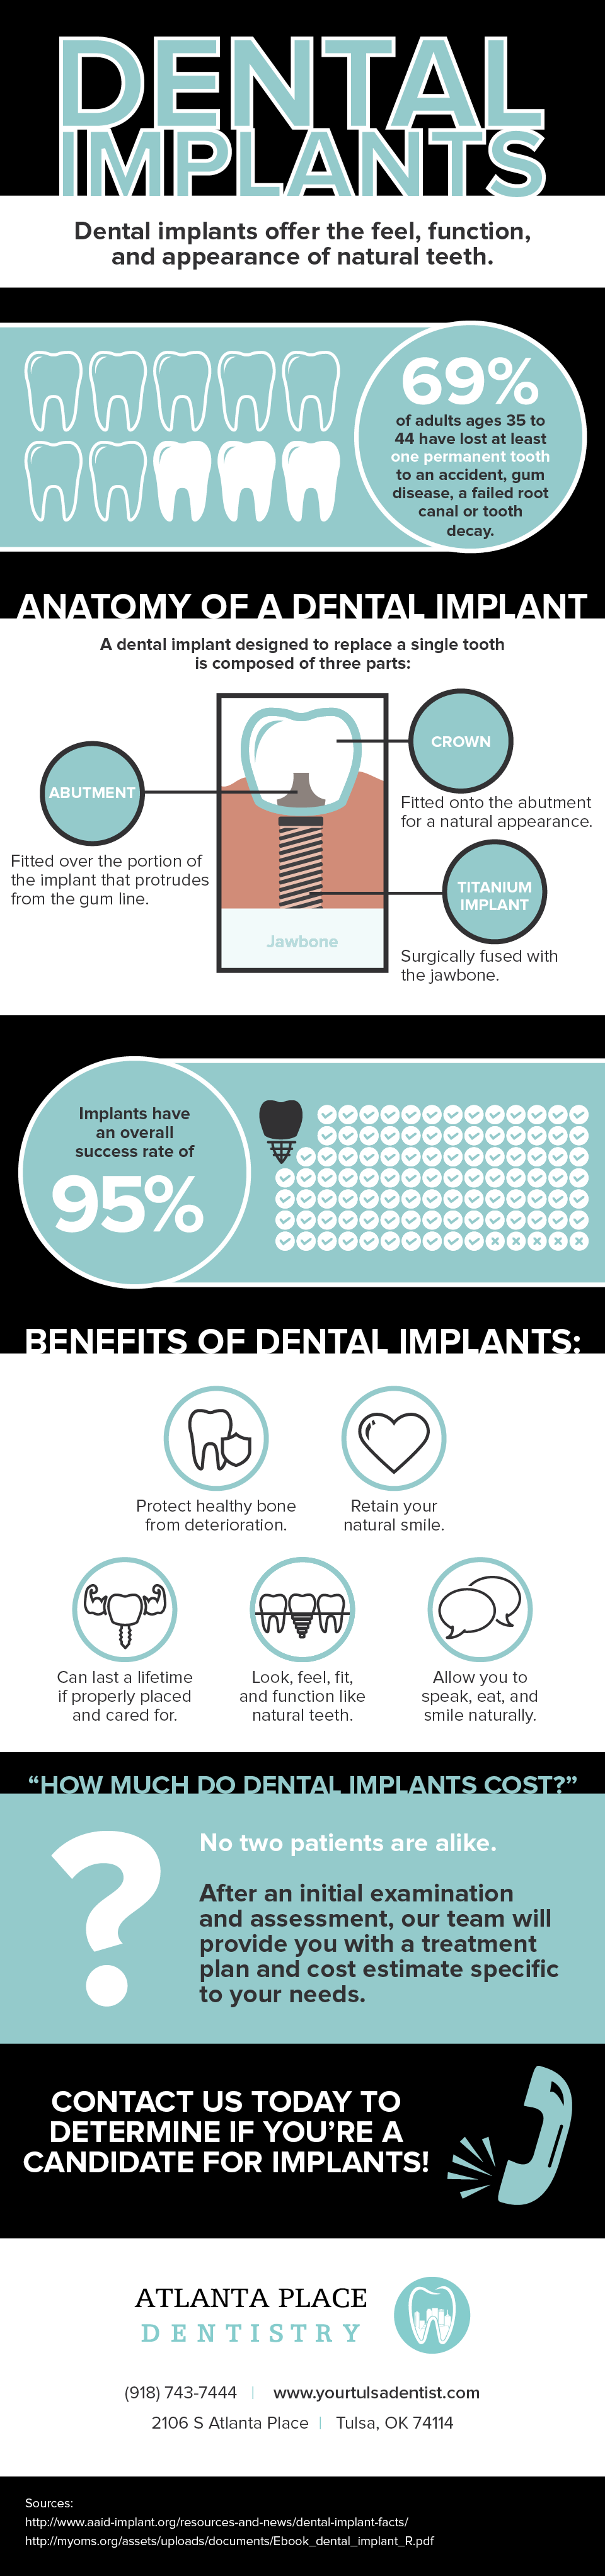 Statistics and benefits of dental implants.